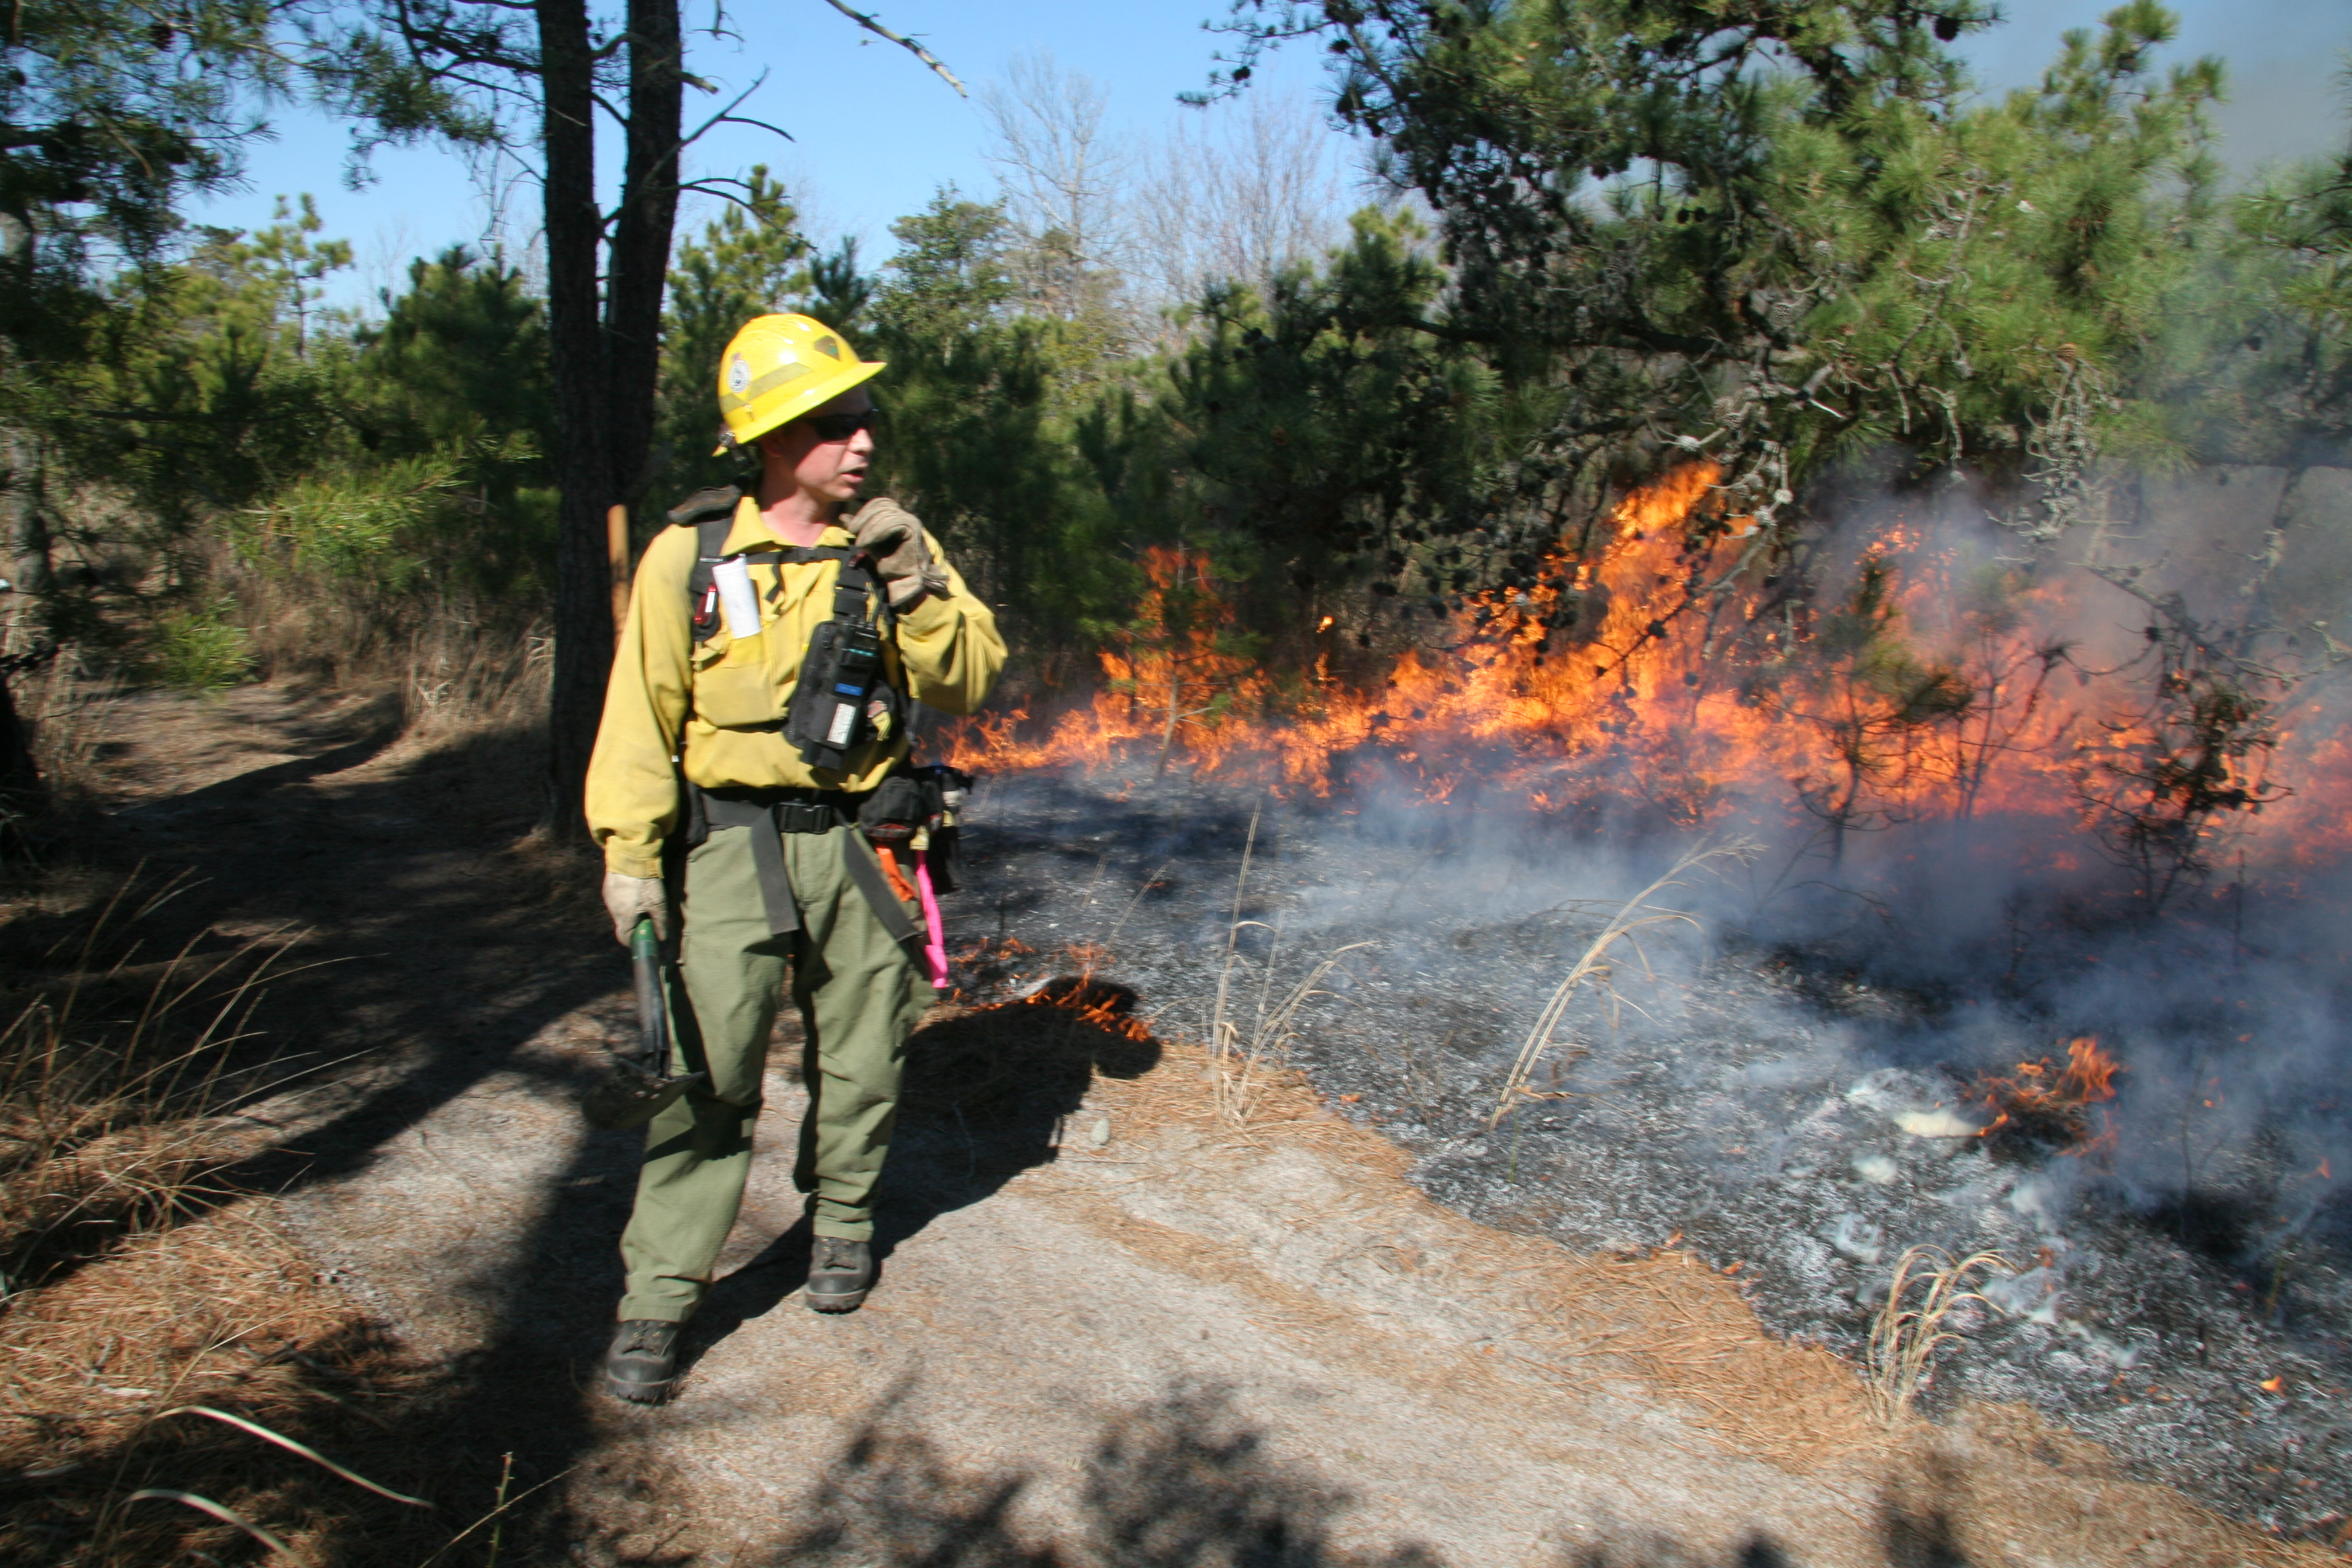 Cape Henlopen Rx Burn (29)